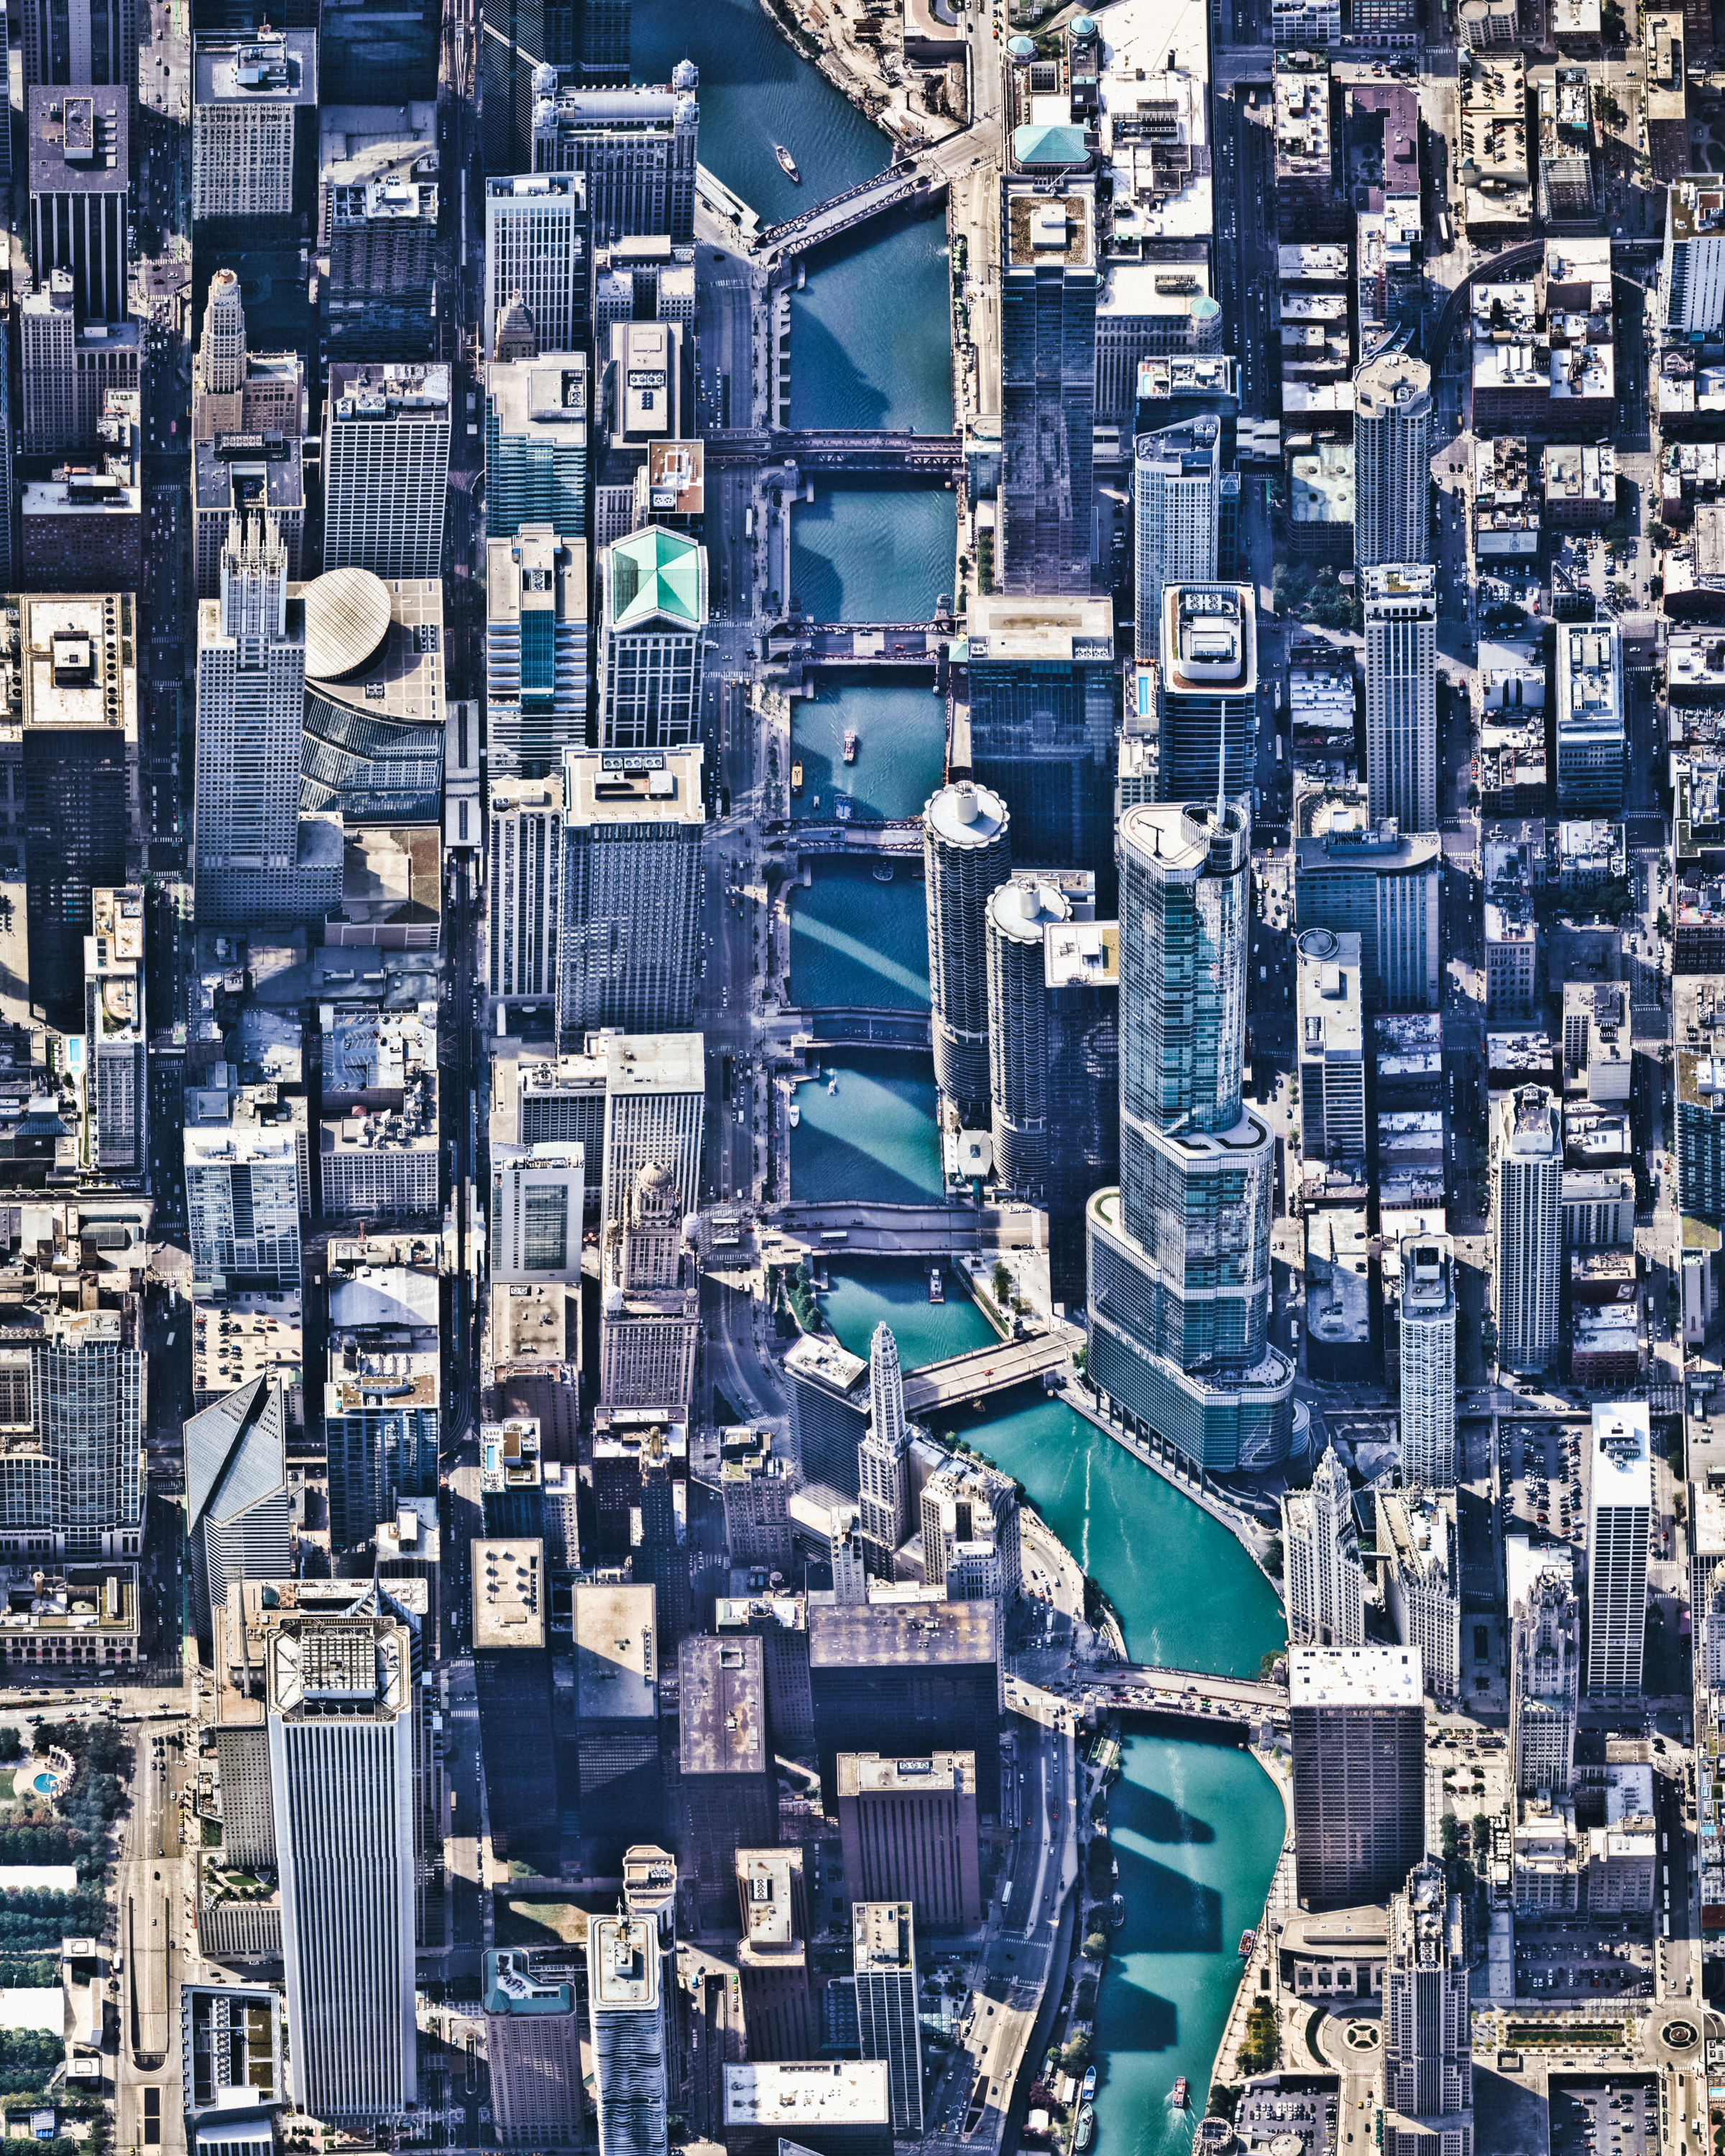 """Chicago, Illinois, is the third most populous city in the United States, with more than 2.7 million residents. This Overview shows the Chicago River flowing through the city center, dividing The Loop (left) and Near North Side (right) communities. Many of the city's prominent skyscrapers can be seen from this perspective, including the Trump International Hotel and Tower, the Aon Center, and Grant Thornton Tower.  41°53'20.0""""N, 87°37'36.0""""W  Source imagery: Nearmap"""